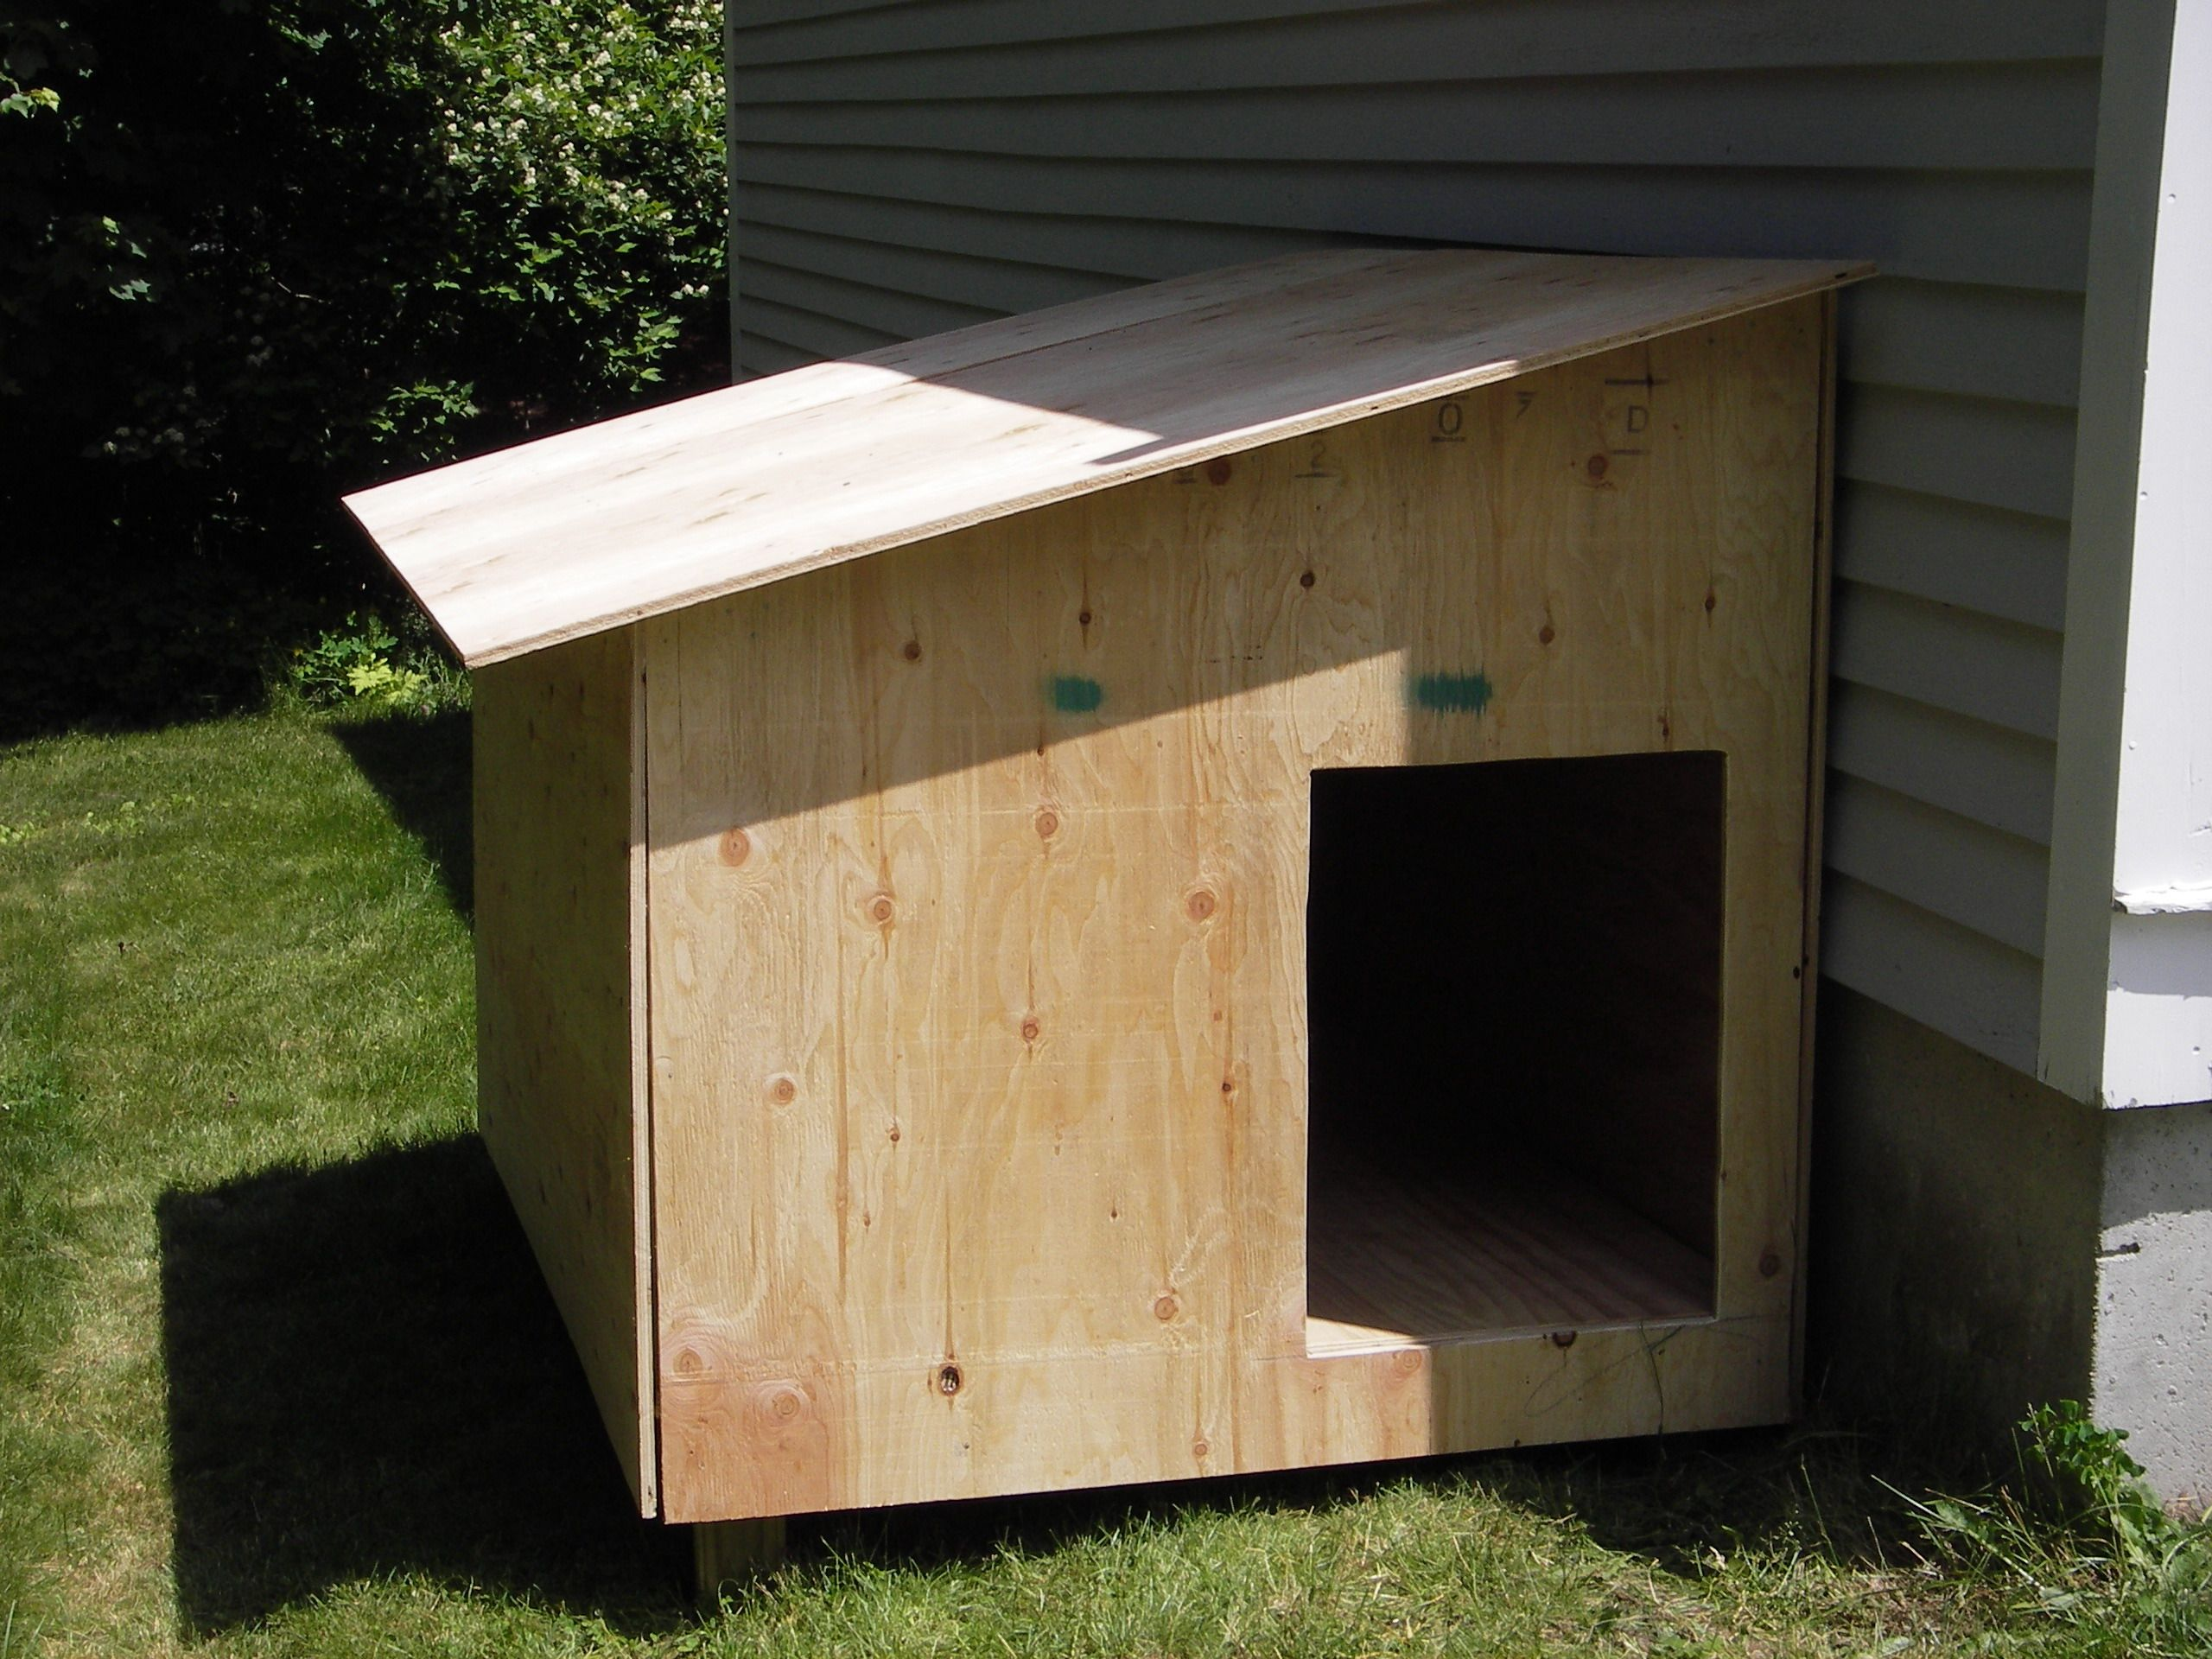 images about Dog House on Pinterest   Dog House Plans  Dog       images about Dog House on Pinterest   Dog House Plans  Dog Houses and Dog Kennels